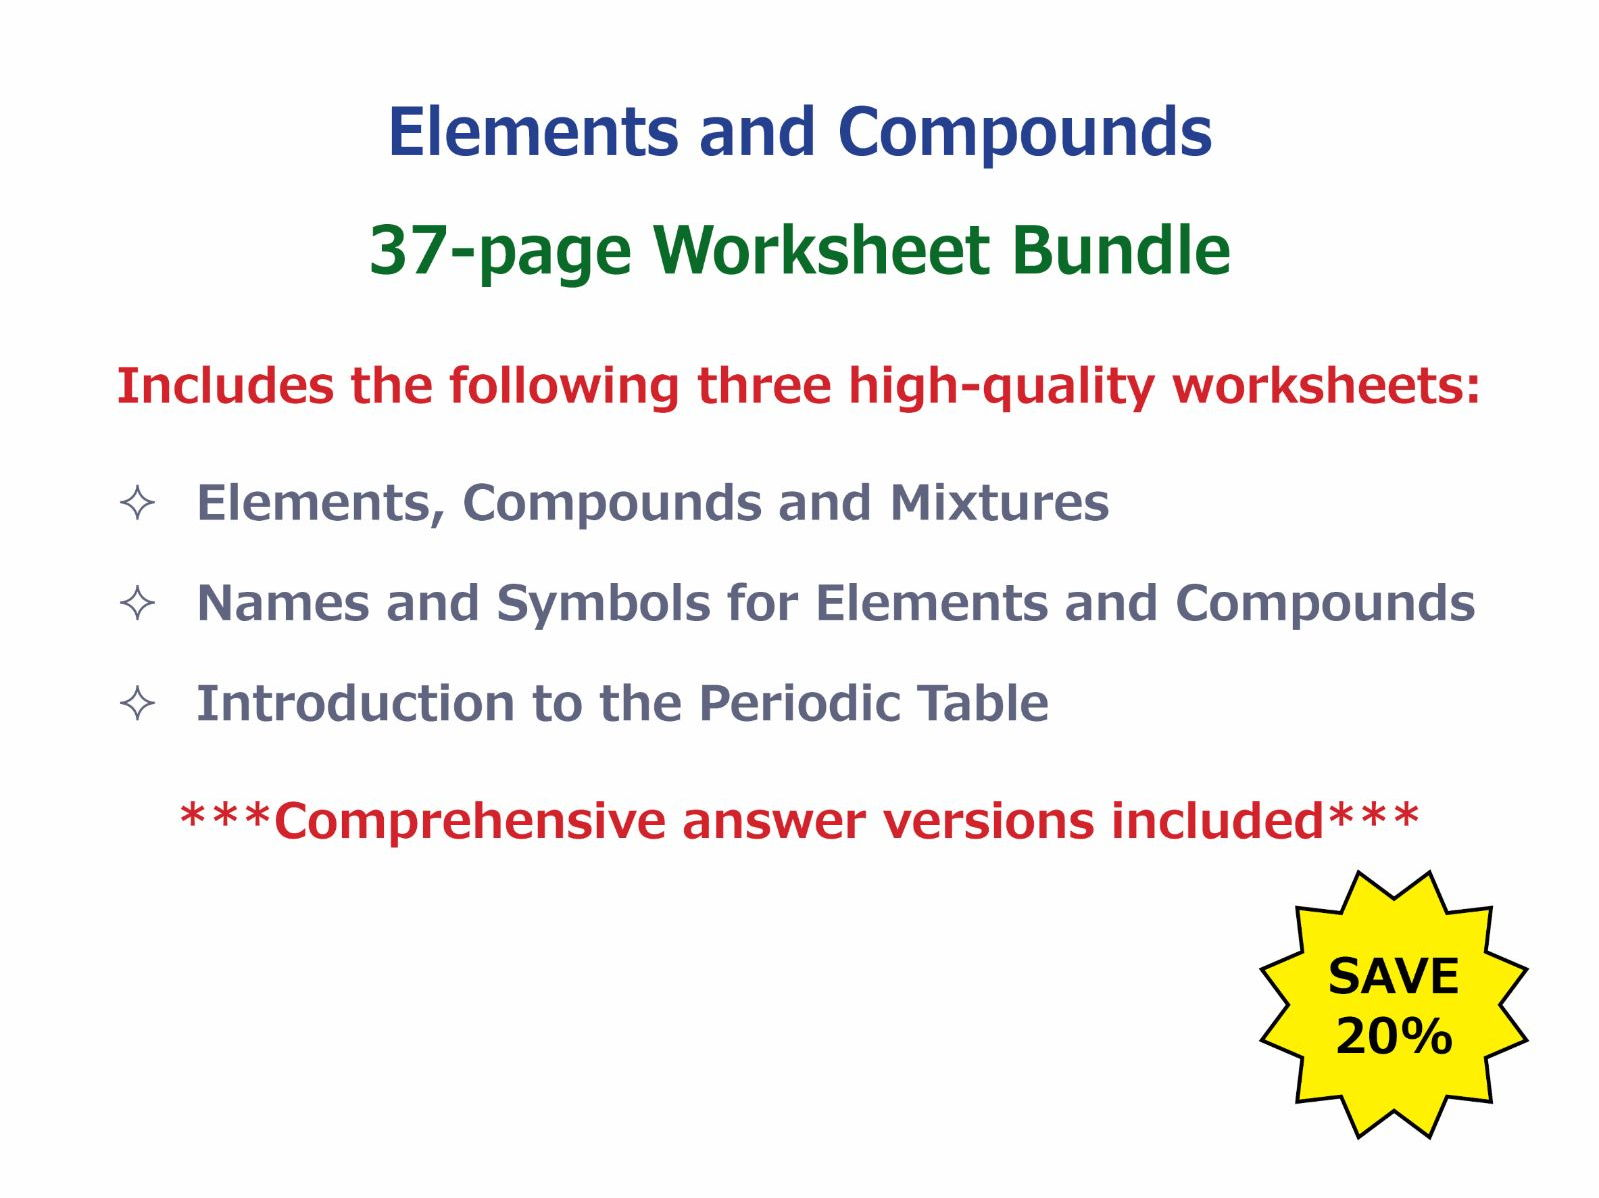 Introduction to the periodic table worksheet by introduction to the periodic table worksheet by goodscienceworksheets teaching resources tes urtaz